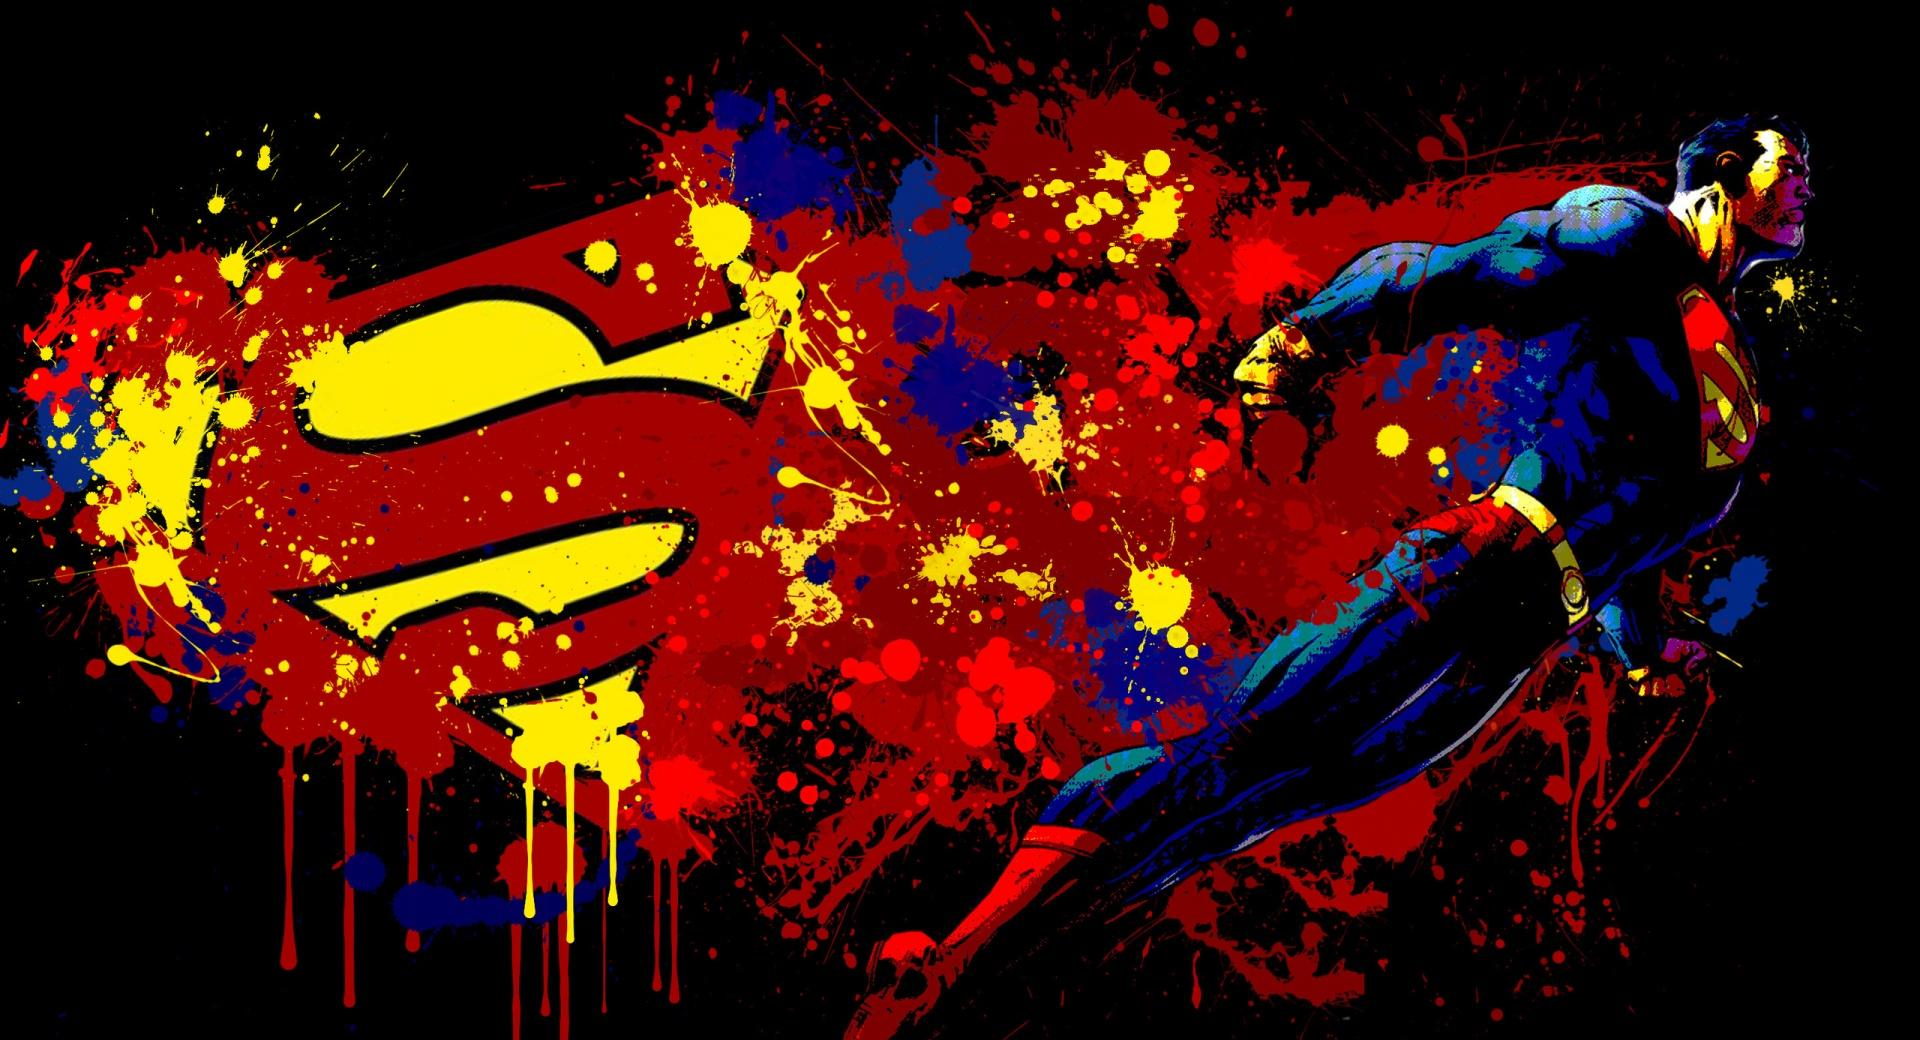 Superman Cartoon wallpapers HD quality